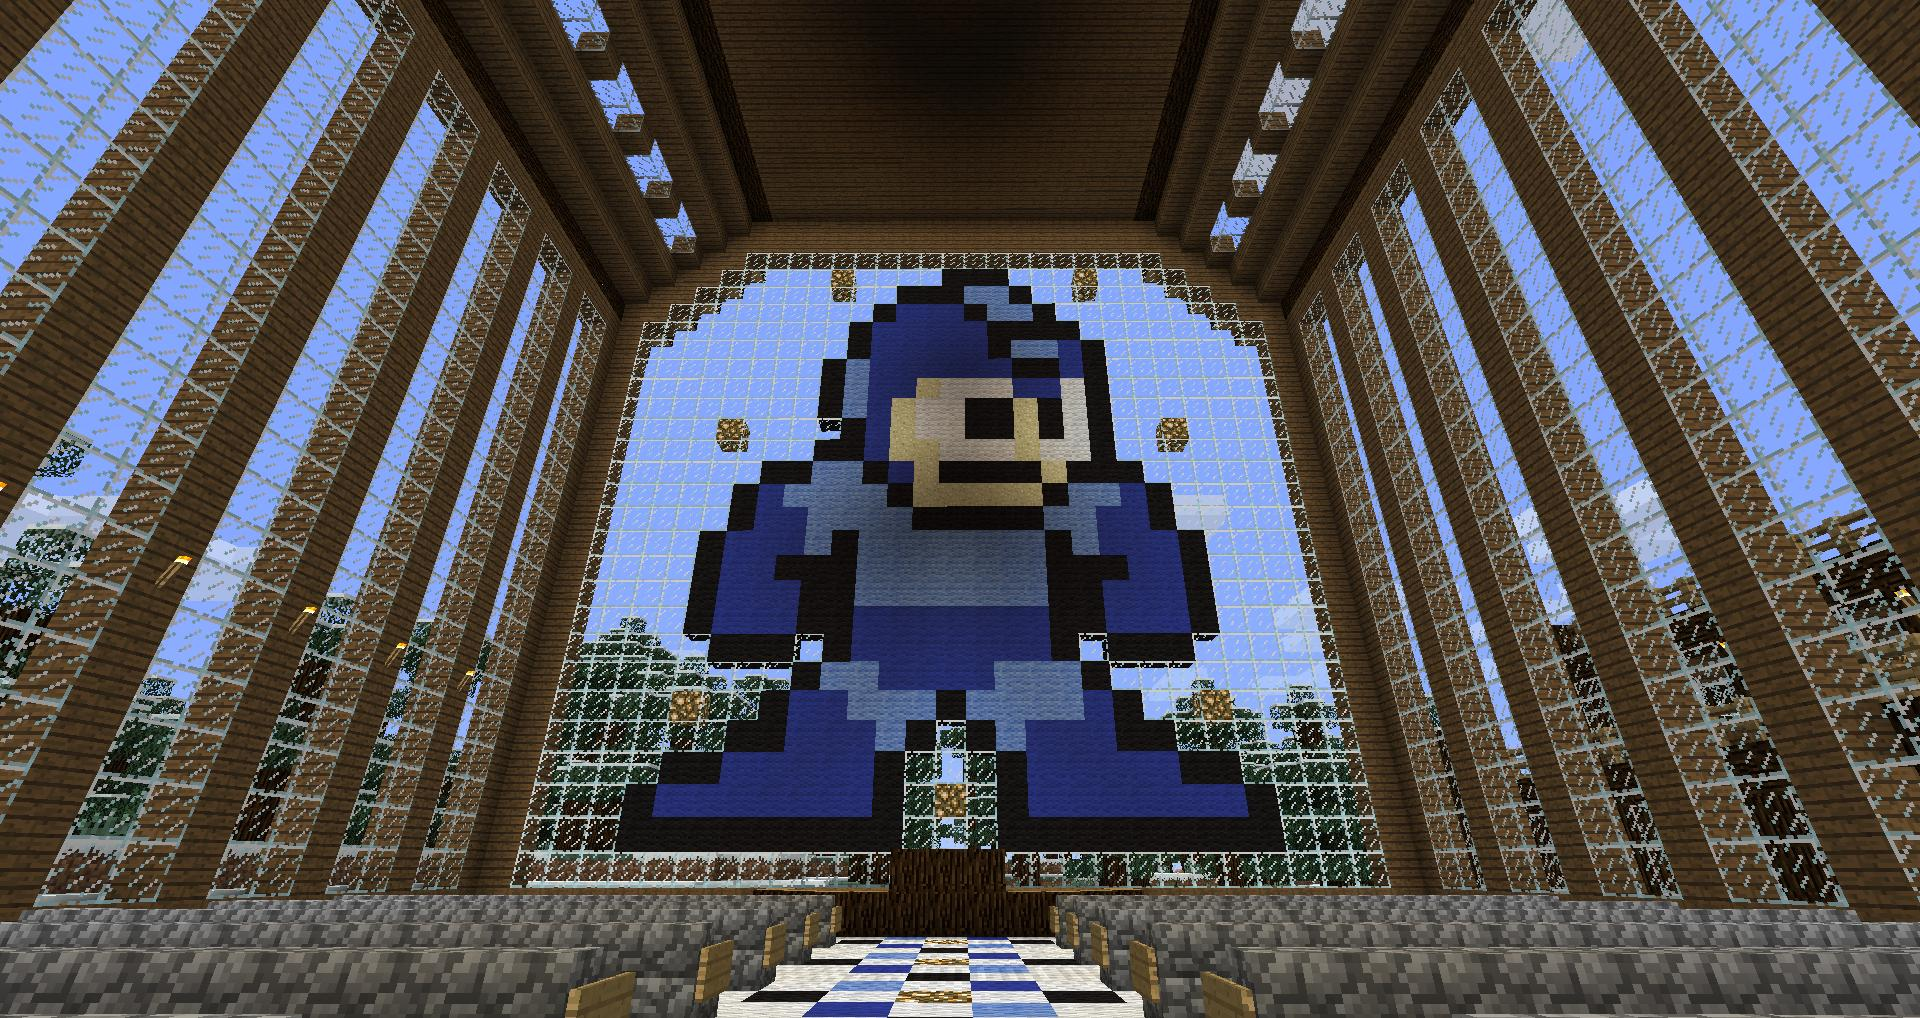 8-Bit Mega Man Church